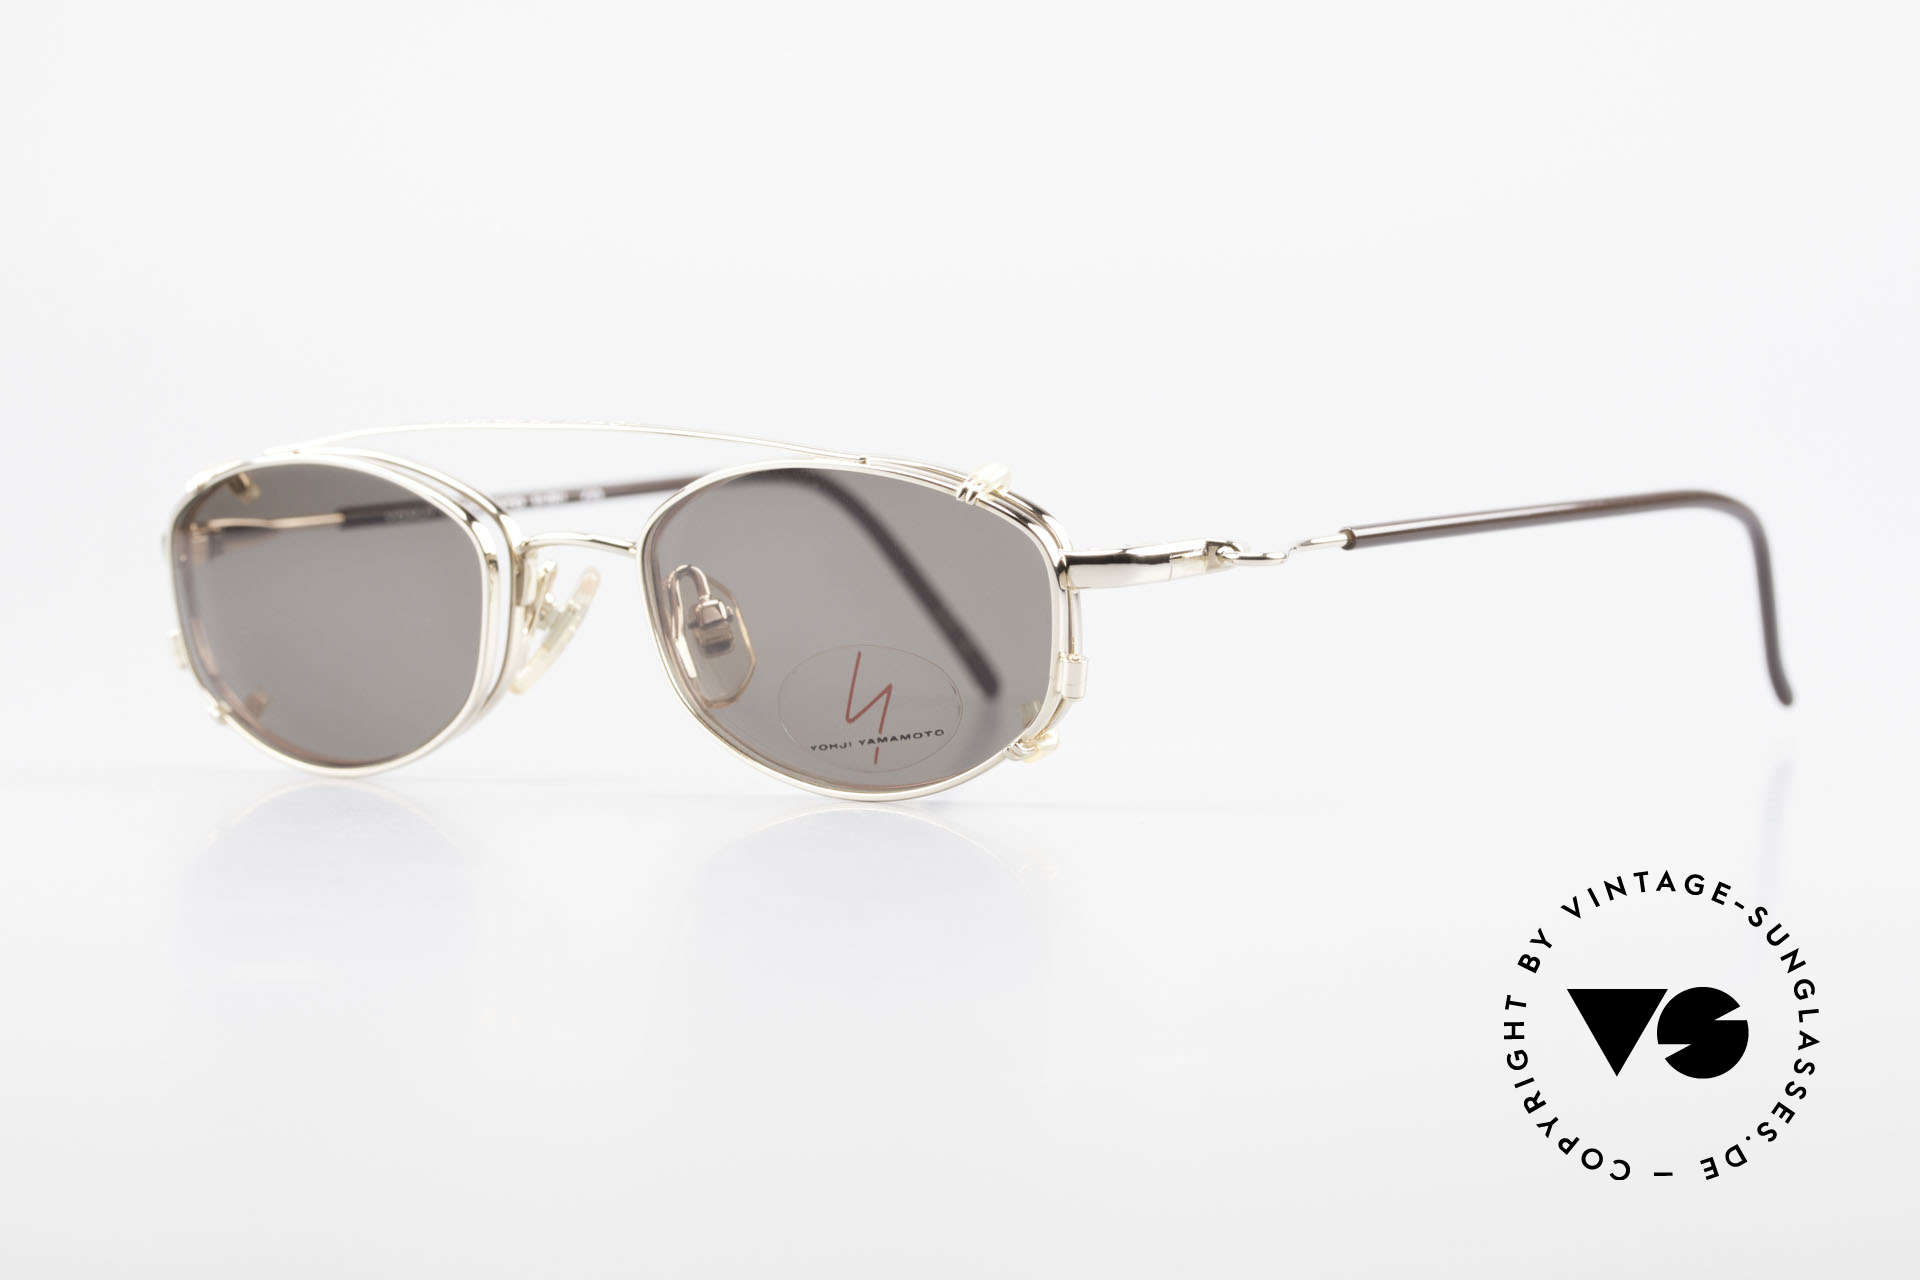 Yohji Yamamoto 51-7211 Gold Plated Frame With Clip On, costly GOLD-PLATED metal frame: luxury eyeglasses, Made for Men and Women